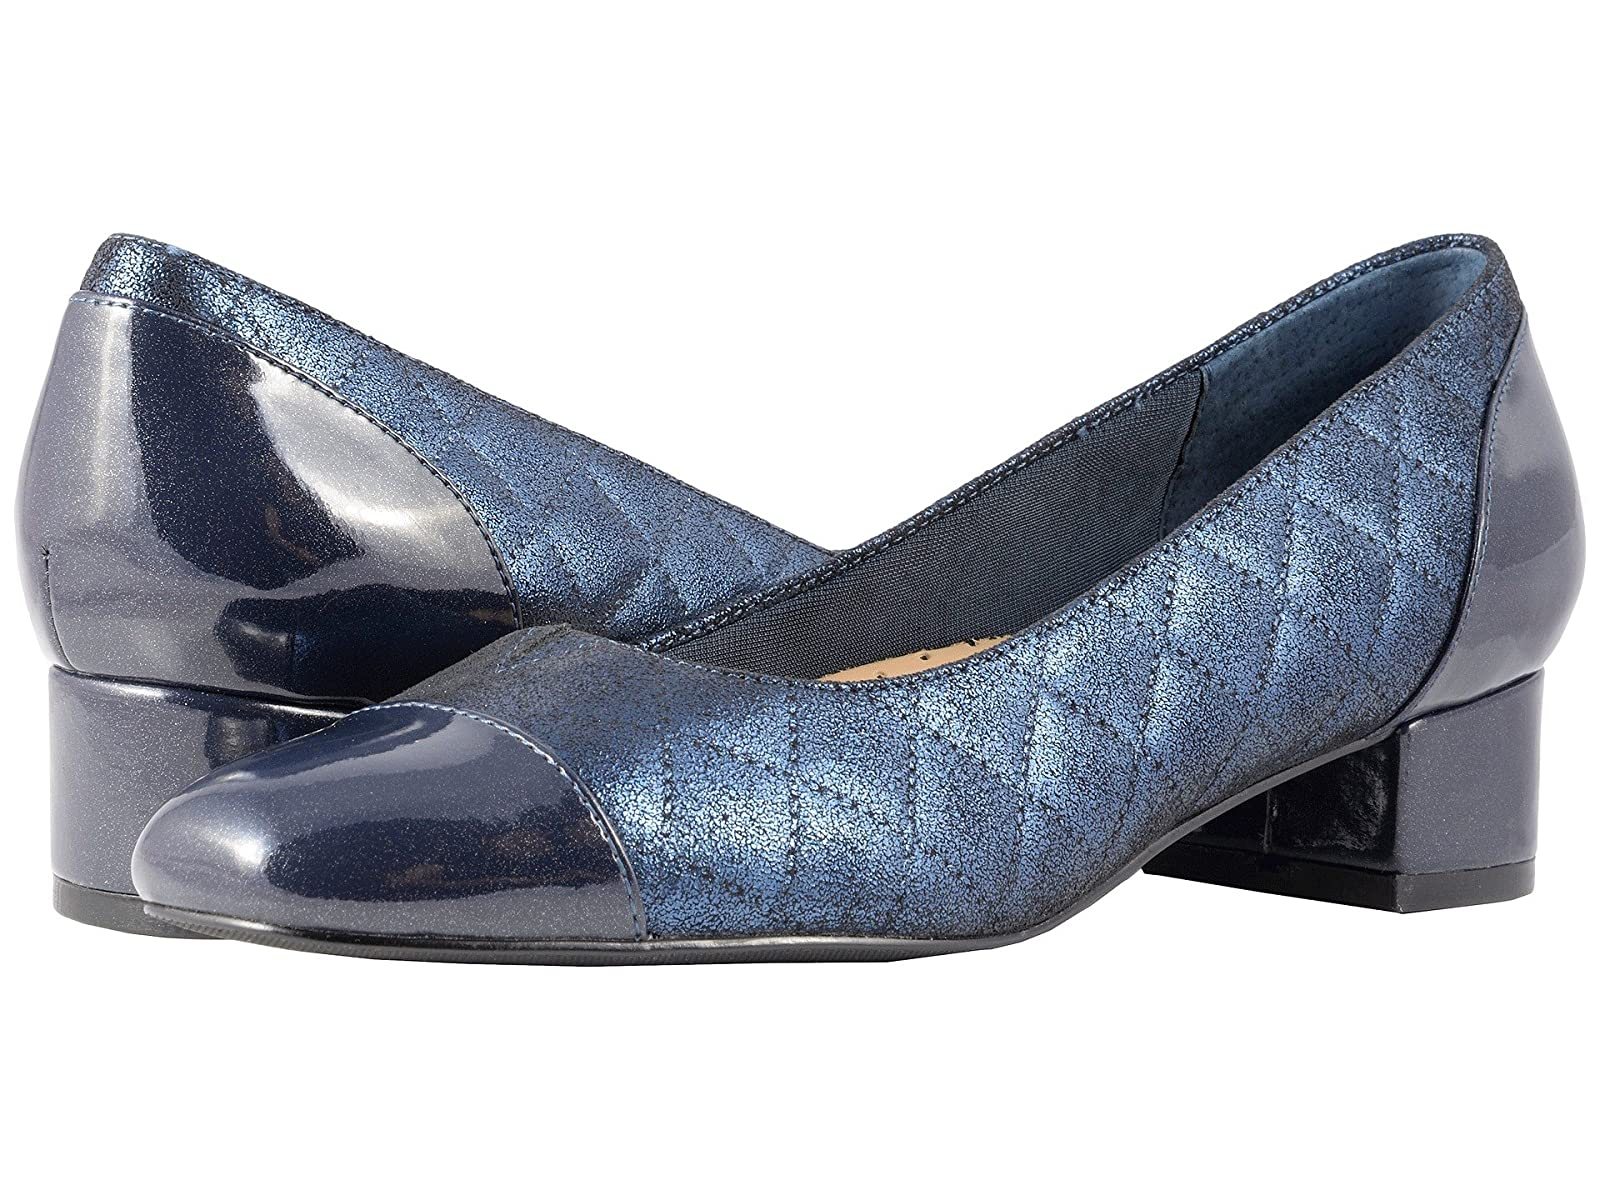 Trotters DanelleCheap and distinctive eye-catching shoes